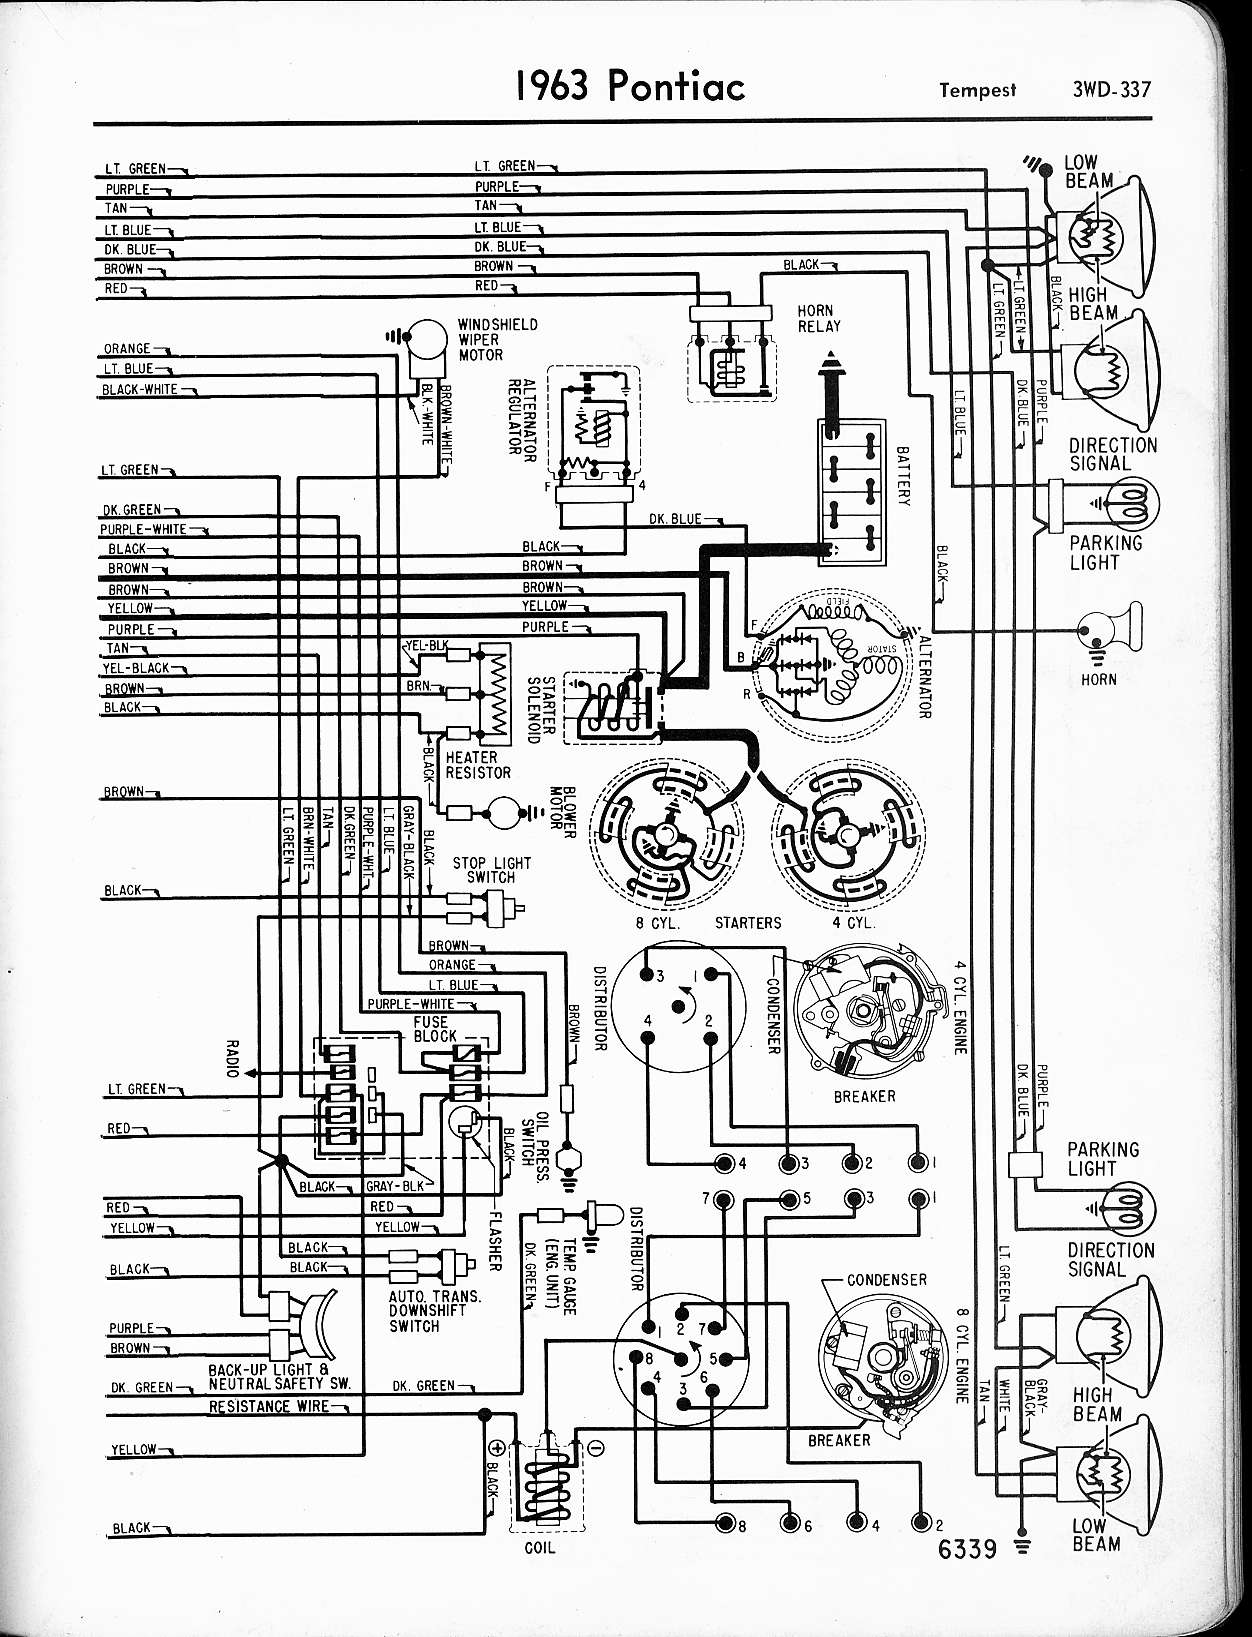 el camino wiring diagram besides 1970 chevelle fuse box diagram